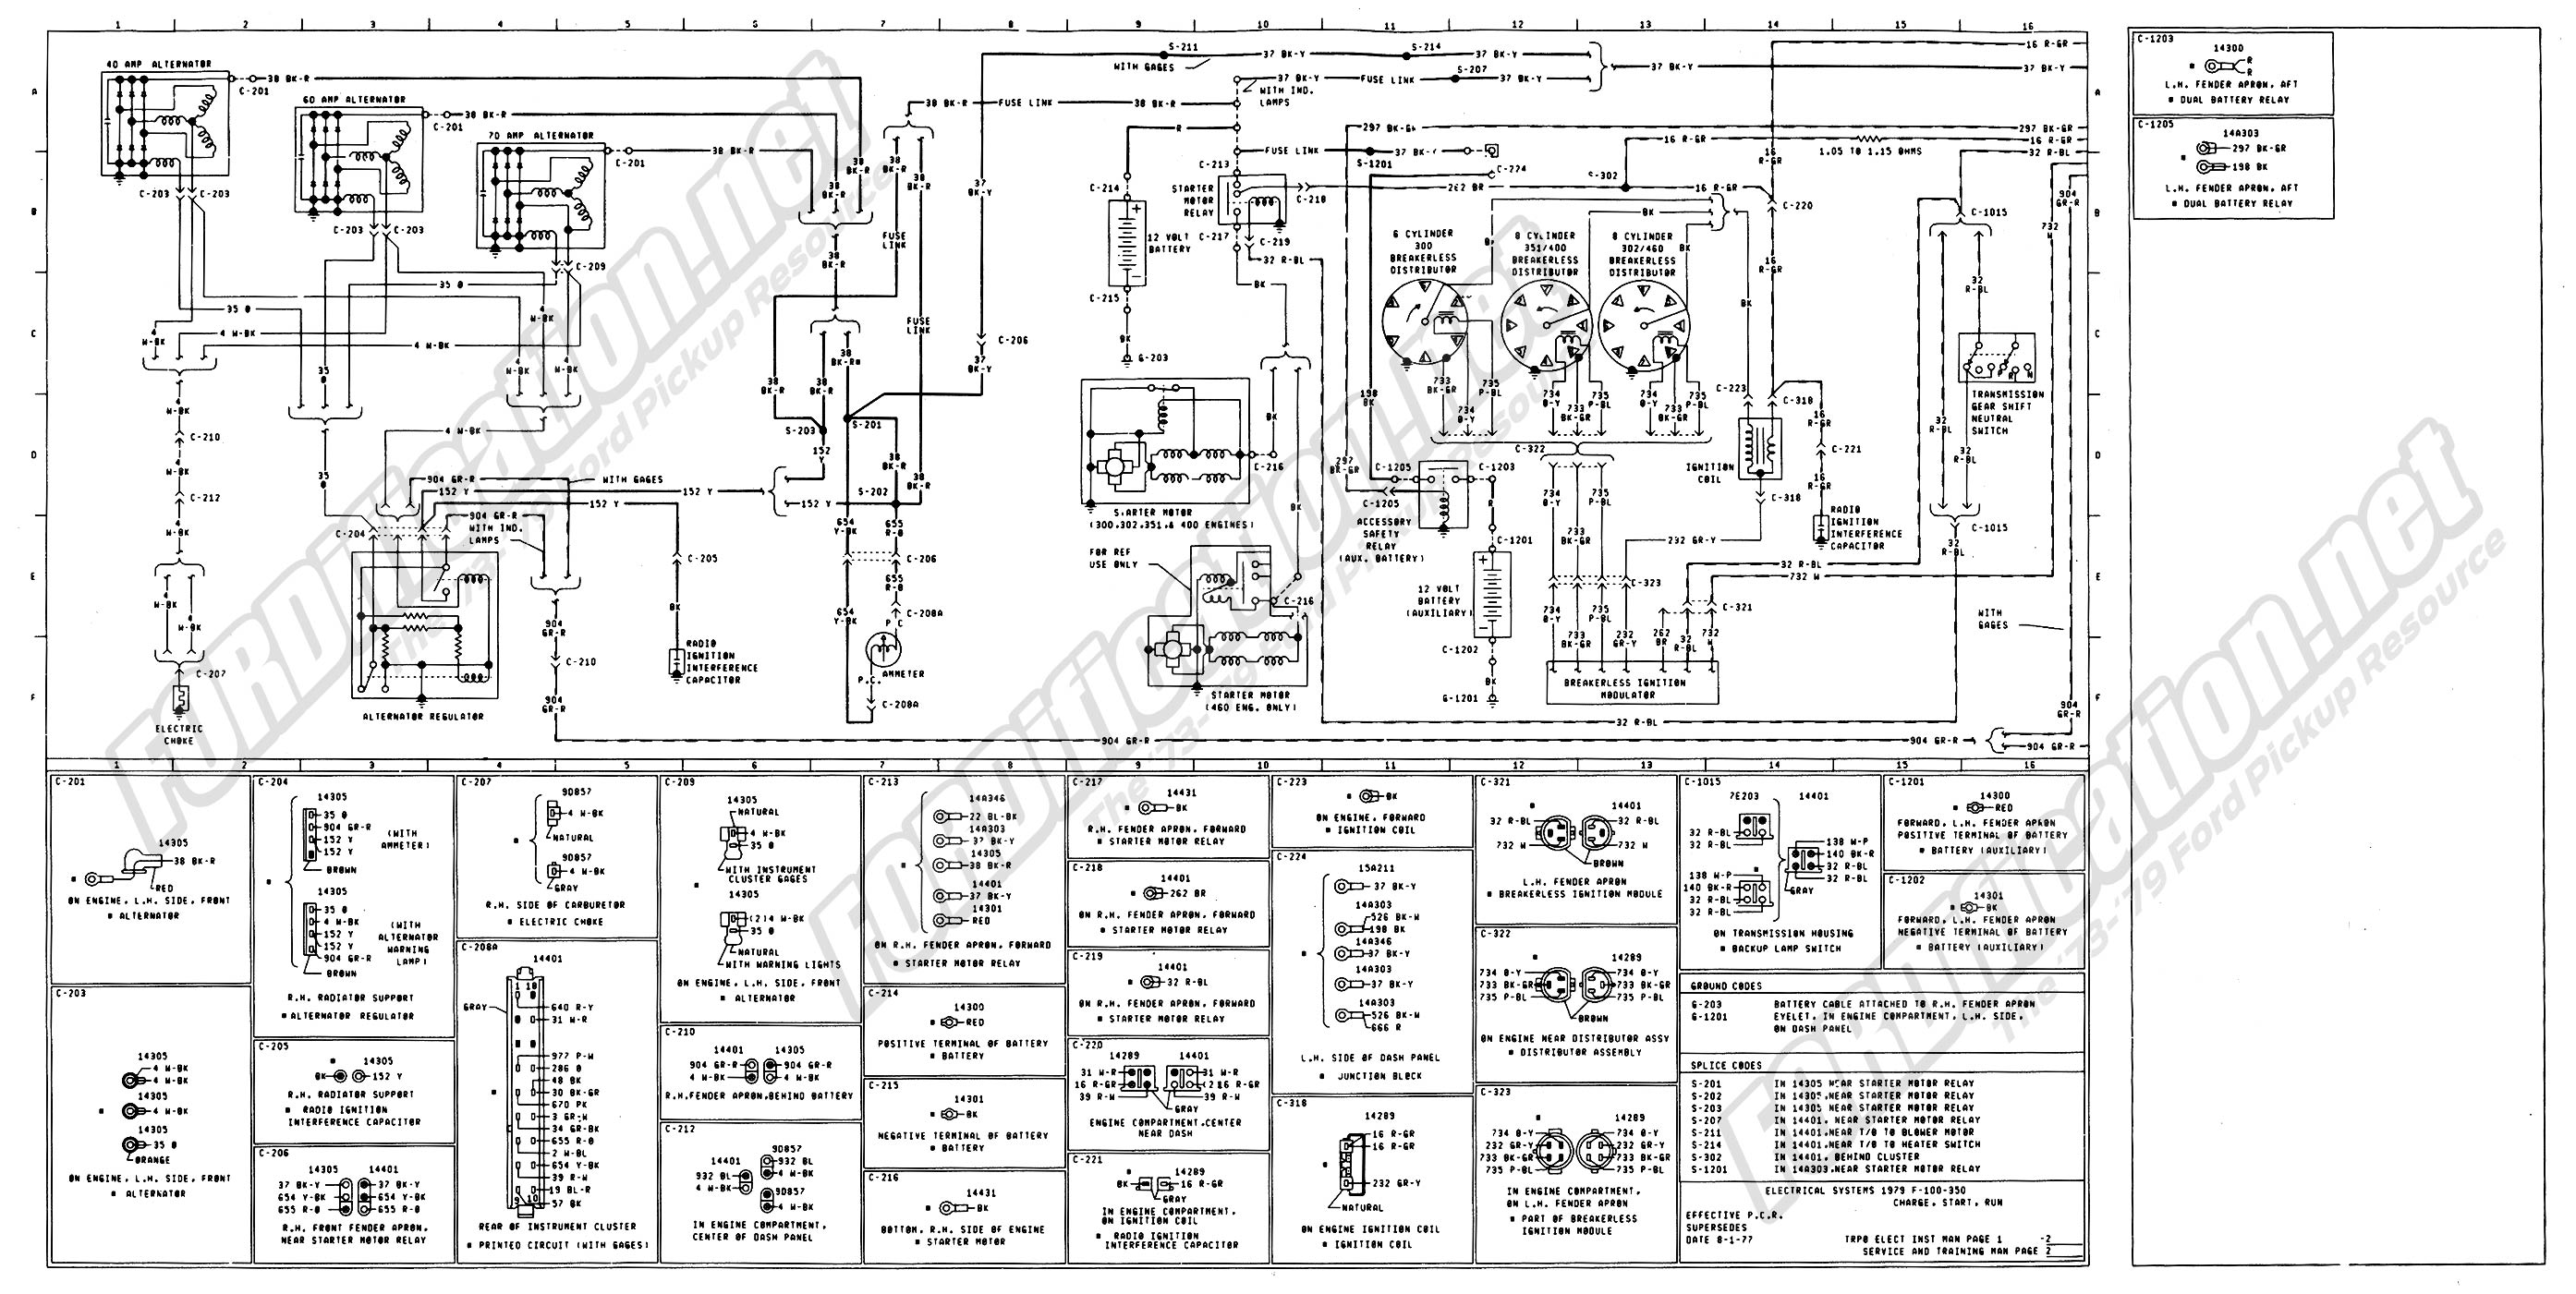 wiring_79master_2of9 1973 1979 ford truck wiring diagrams & schematics fordification net 1979 ford bronco wiring diagram at mifinder.co